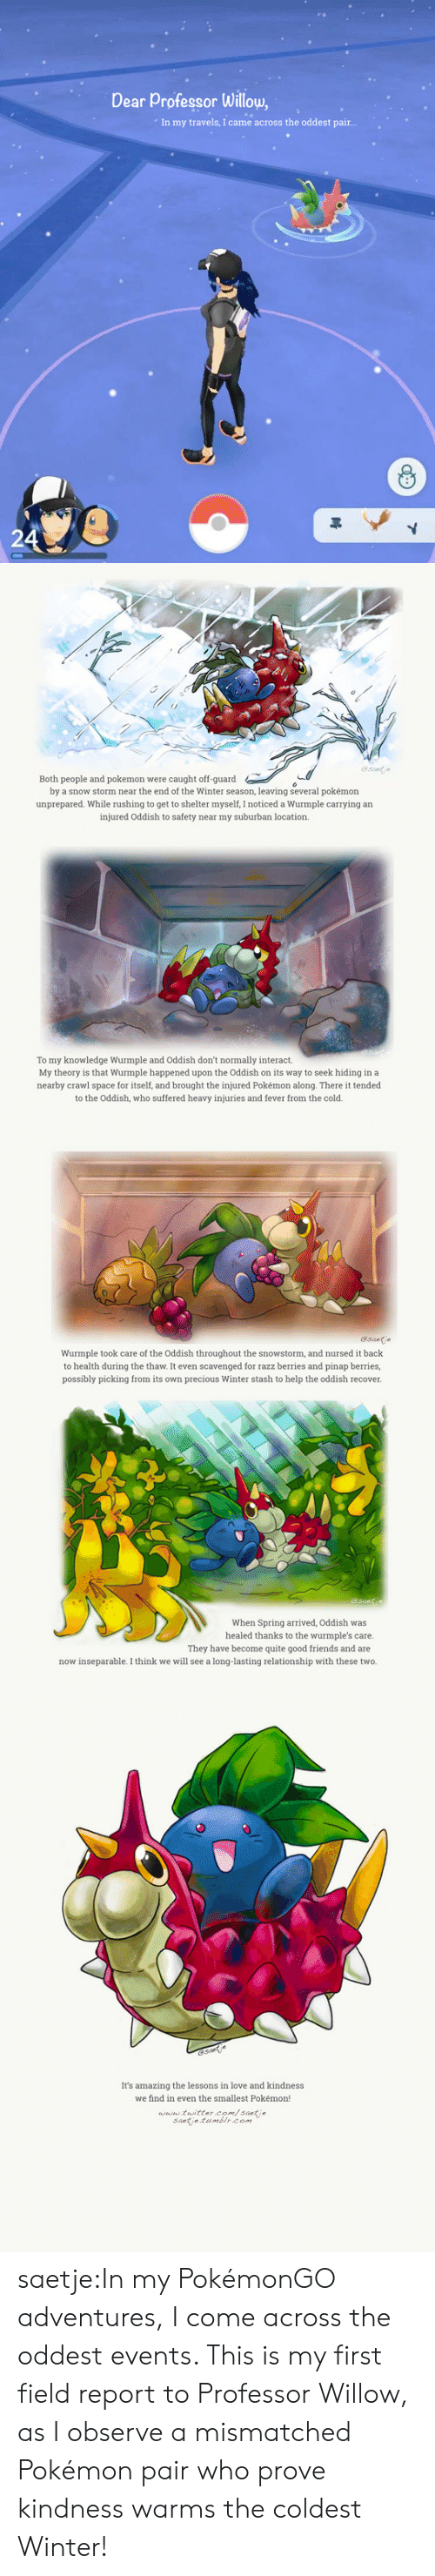 willow: Dear Professor Willow,  In my travels, I came across the oddest pair..   (s  esntde  Both people and pokemon were caught off-guard  by a snow storm near the end of the Winter season, leaving several pokémon  unprepared. While rushing to get to shelter myself, I noticed a Wurmple carrying an  injured Oddish to safety near my suburban location.  To my knowledge Wurmple and Oddish don't normally interact.  My theory is that Wurmple happened upon the Oddish on its way to seek hiding in a  nearby crawl space for itself, and brought the injured Pokémon along. There it tended  to the Oddish, who suffered heavy injuries and fever from the cold.   Wurmple took care of the Oddish throughout the snowstorm, and nursed it back  to health during the thaw. It even scavenged for razz berries and pinap berries,  possibly picking from its own precious Winter stash to help the oddish recover.  When Spring arrived, Oddish was  healed thanks to the wurmple's care.  They have become quite good friends and are  now inseparable. I think we will see a long-lasting relationship with these two.   It's amazing the lessons in love and kindnes  we find in even the smallest Pokémon!  www tuittercom/santie  saetie tumblr.com saetje:In my PokémonGO adventures, I come across the oddest events. This is my first field report to Professor Willow, as I observe a mismatched Pokémon pair who prove kindness warms the coldest Winter!